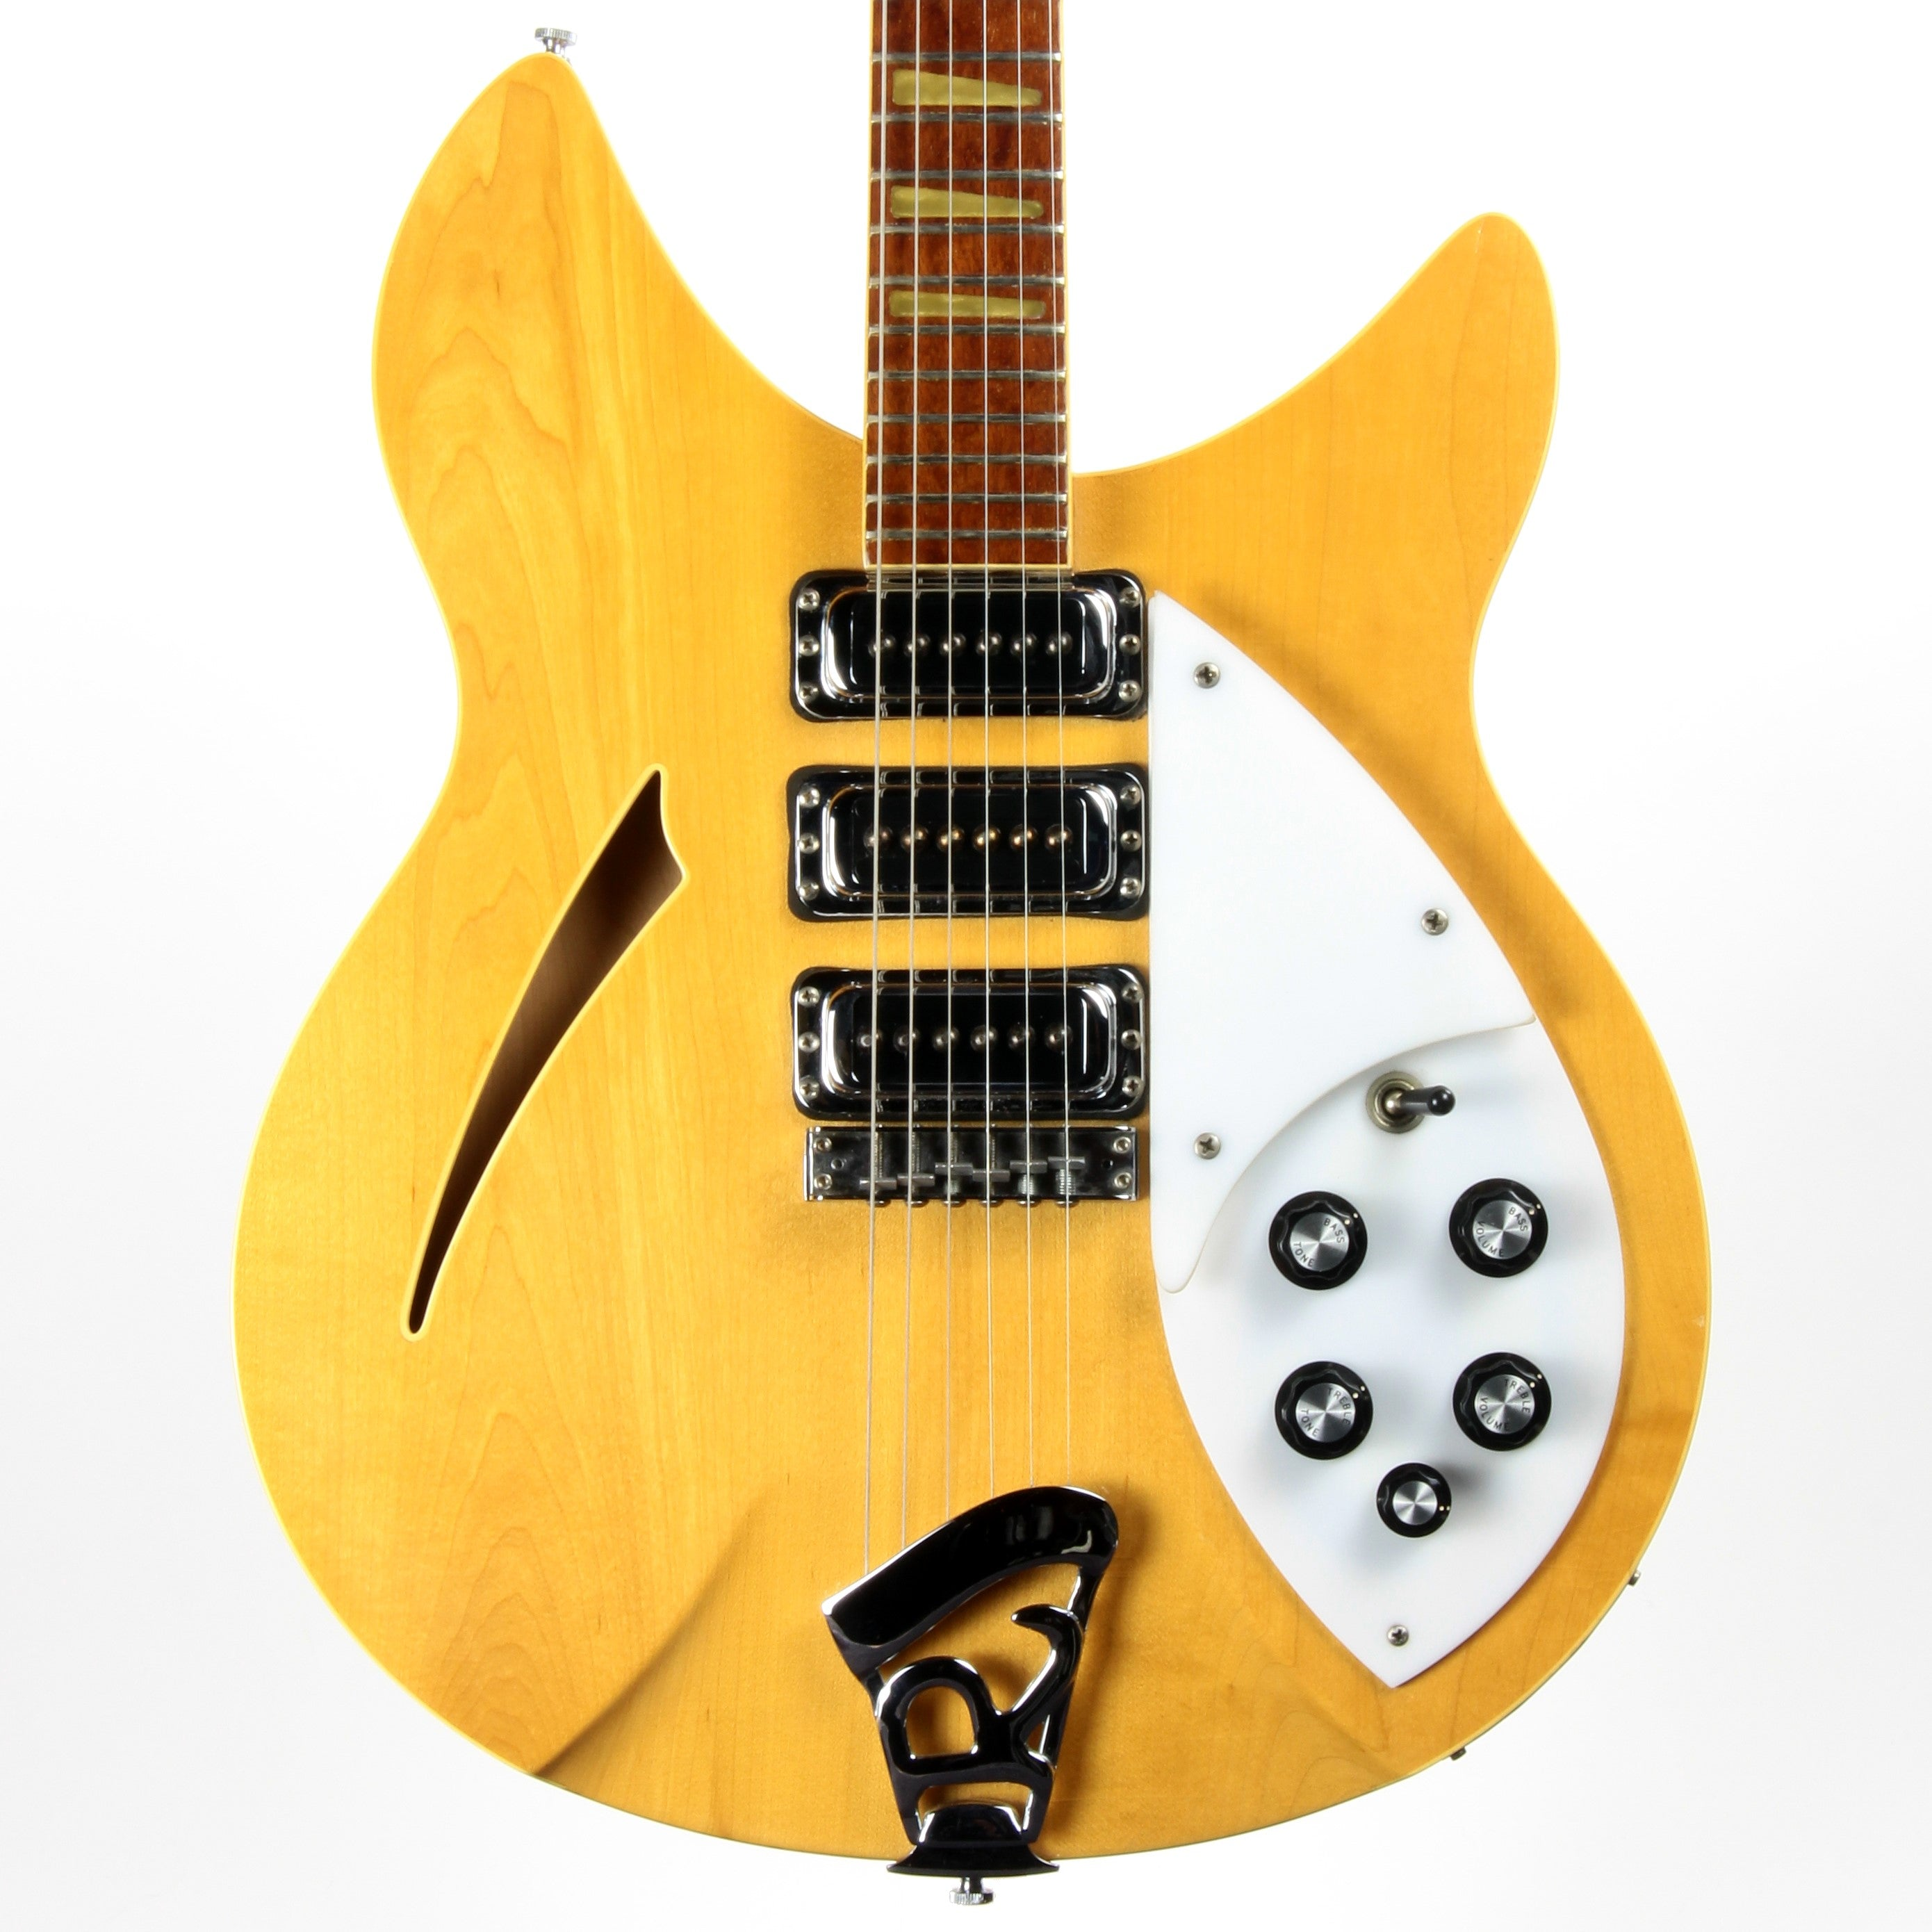 1992 Rickenbacker 370WB Mapleglo - Double-Bound OS Old-Style - 3 Pickups - Original Silver Case!